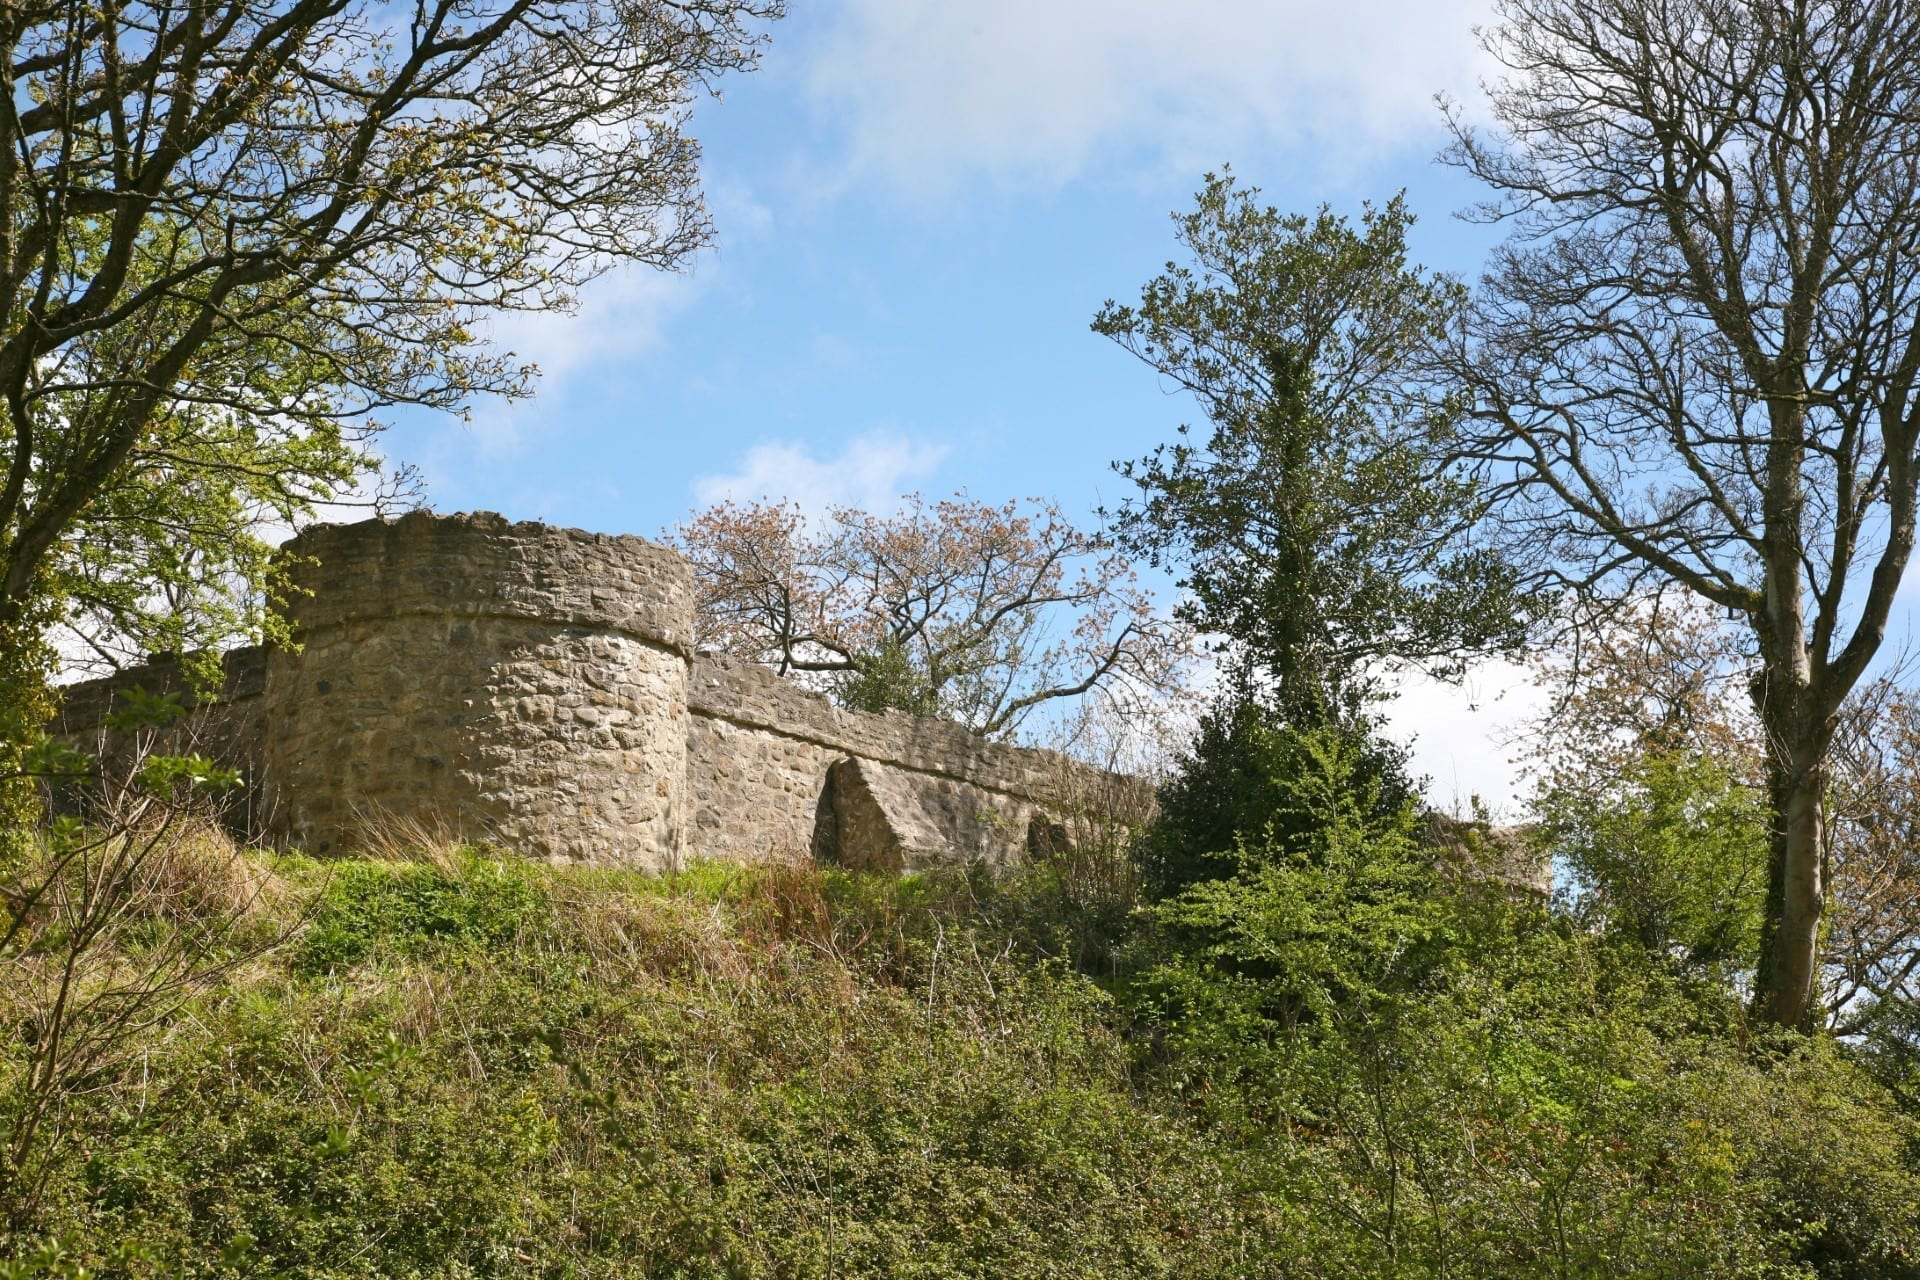 Aberlleiniog Castle in Anglesey